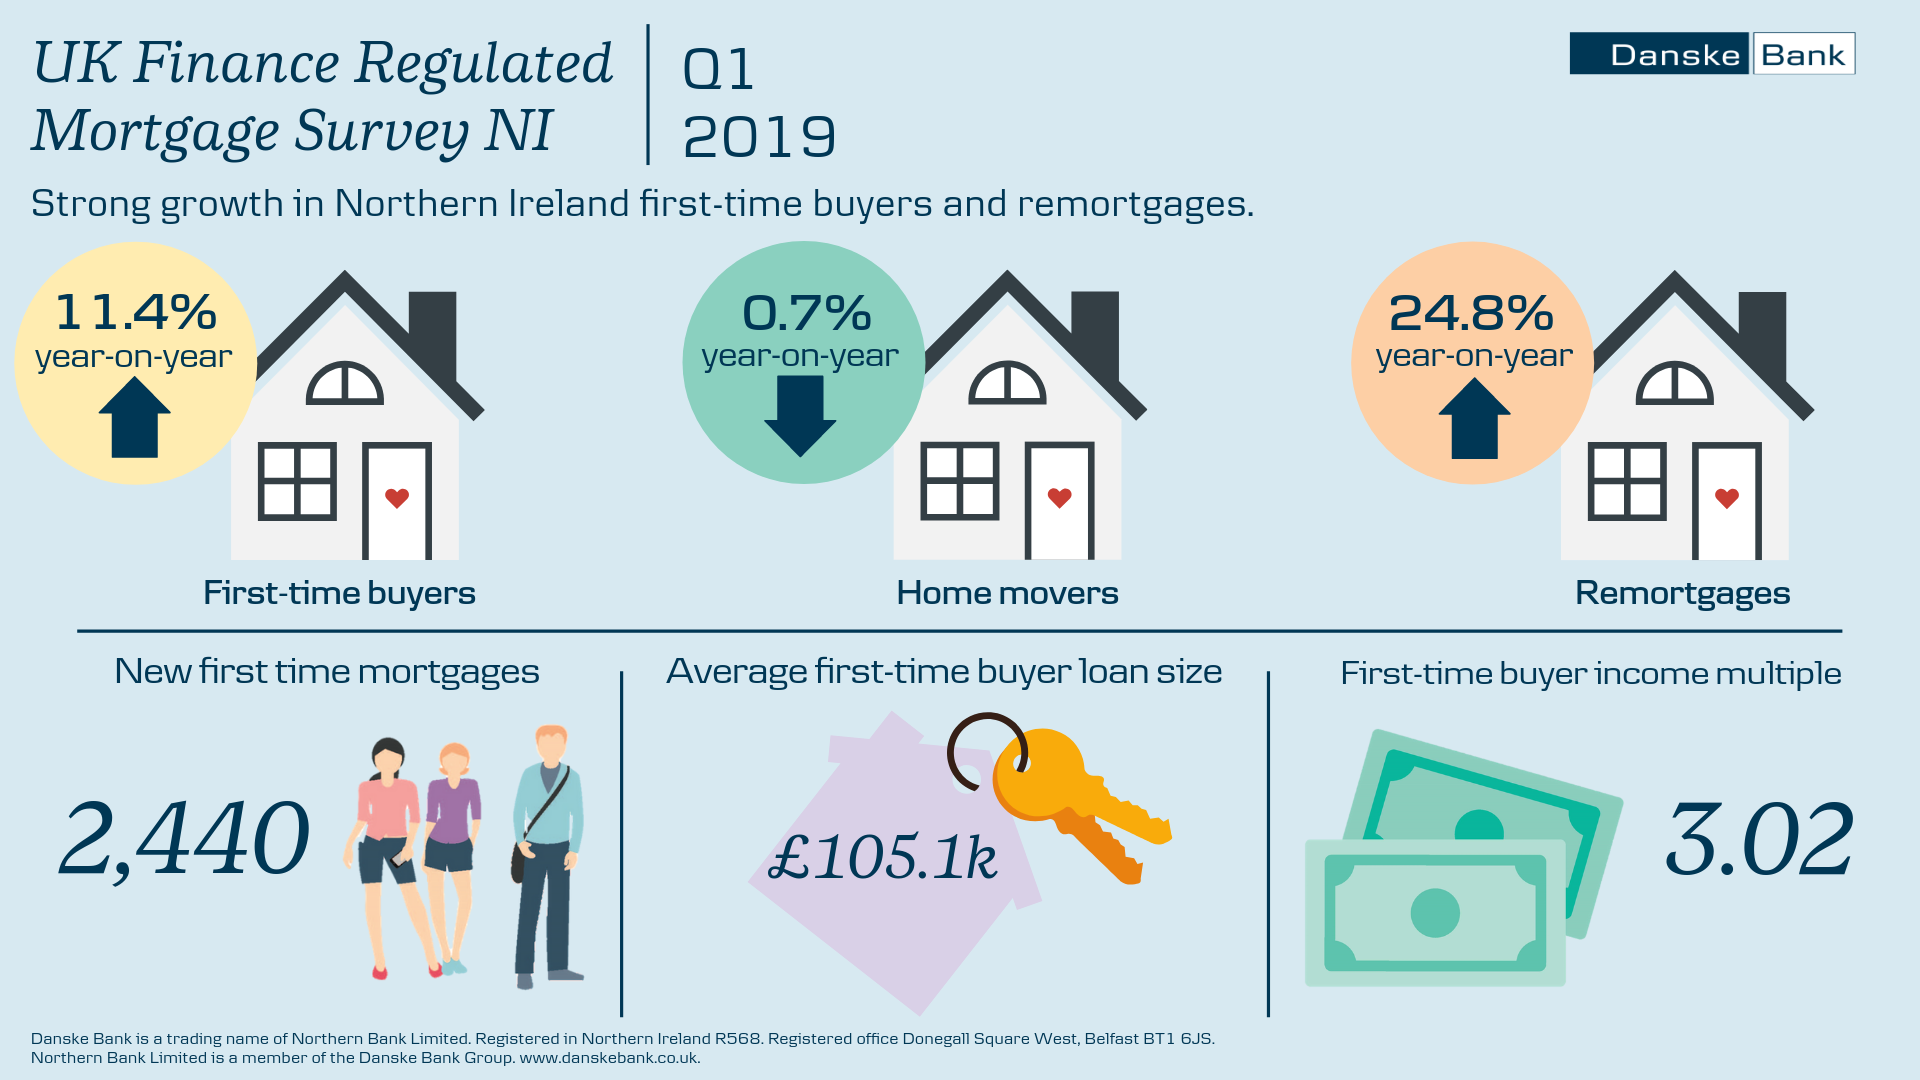 Infographic showing key statistics from the UK Finance Regulated Mortgage Survey NI Q1 2019.